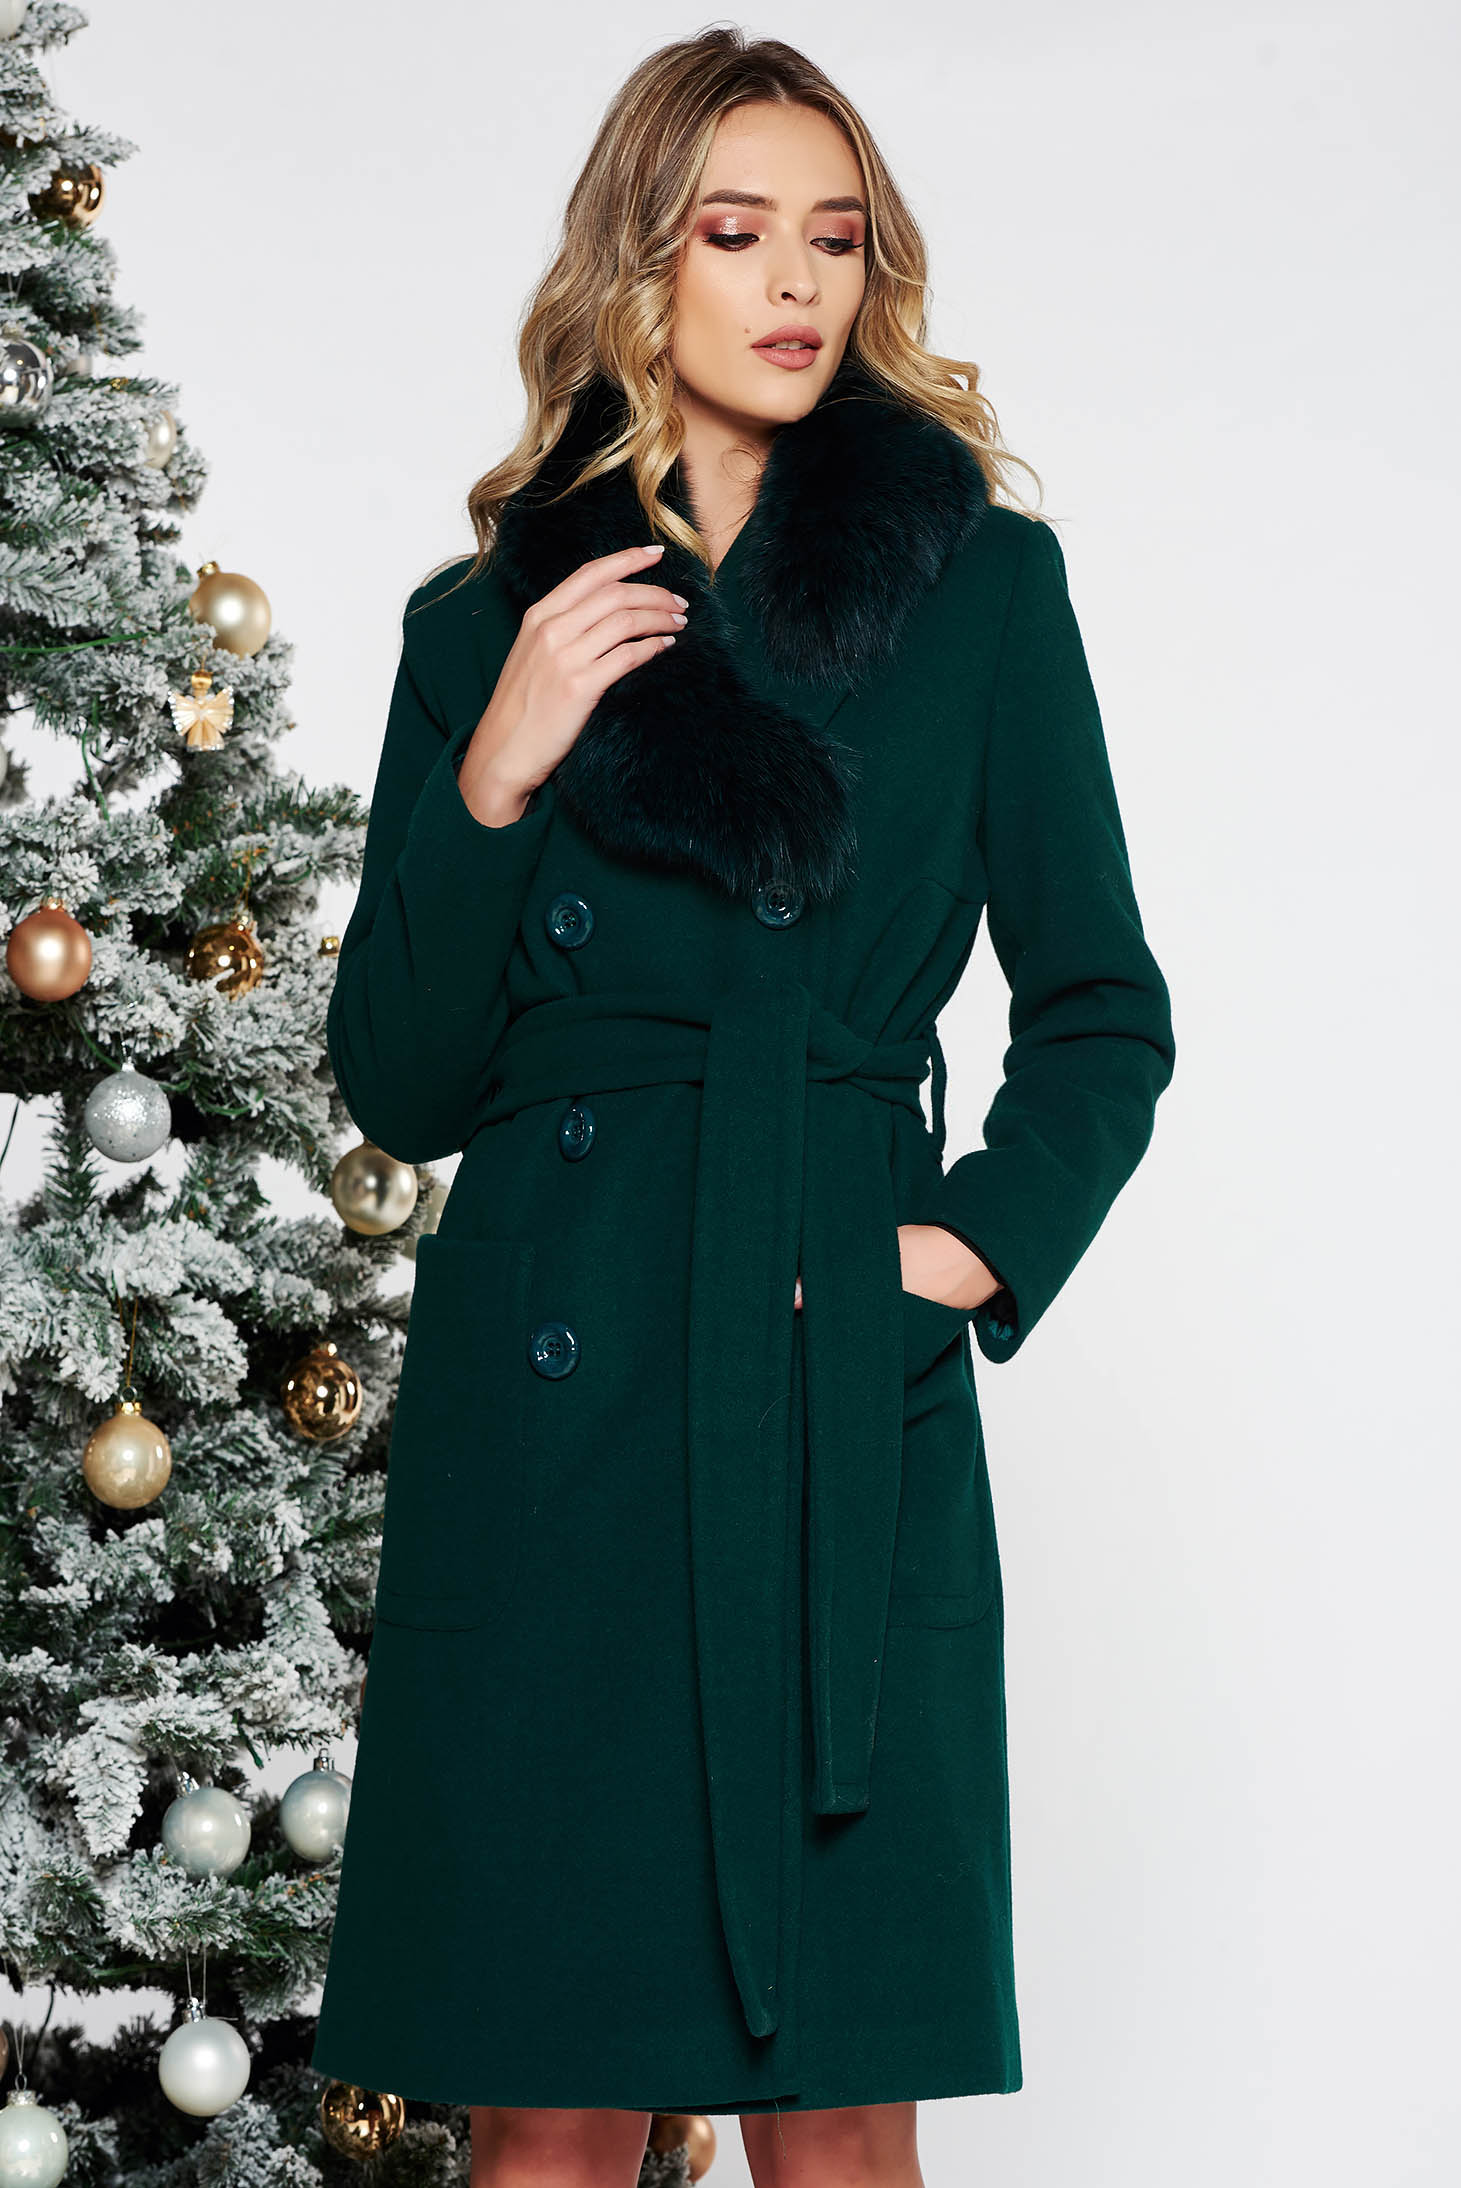 LaDonna green elegant straight wool coat fur collar